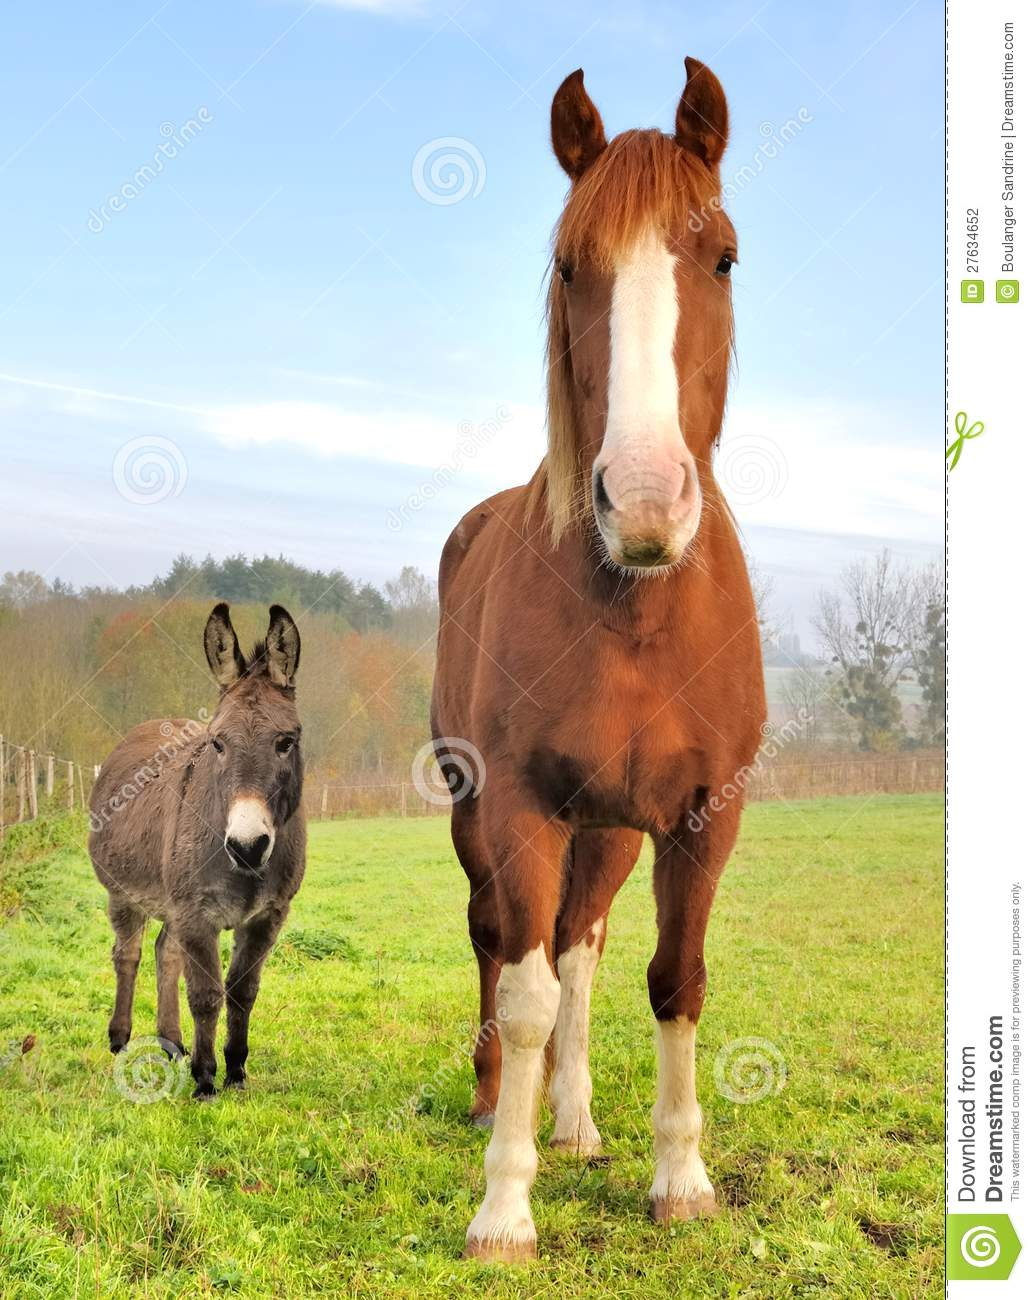 Friendship Between A Donkey And A Horse Stock Photo